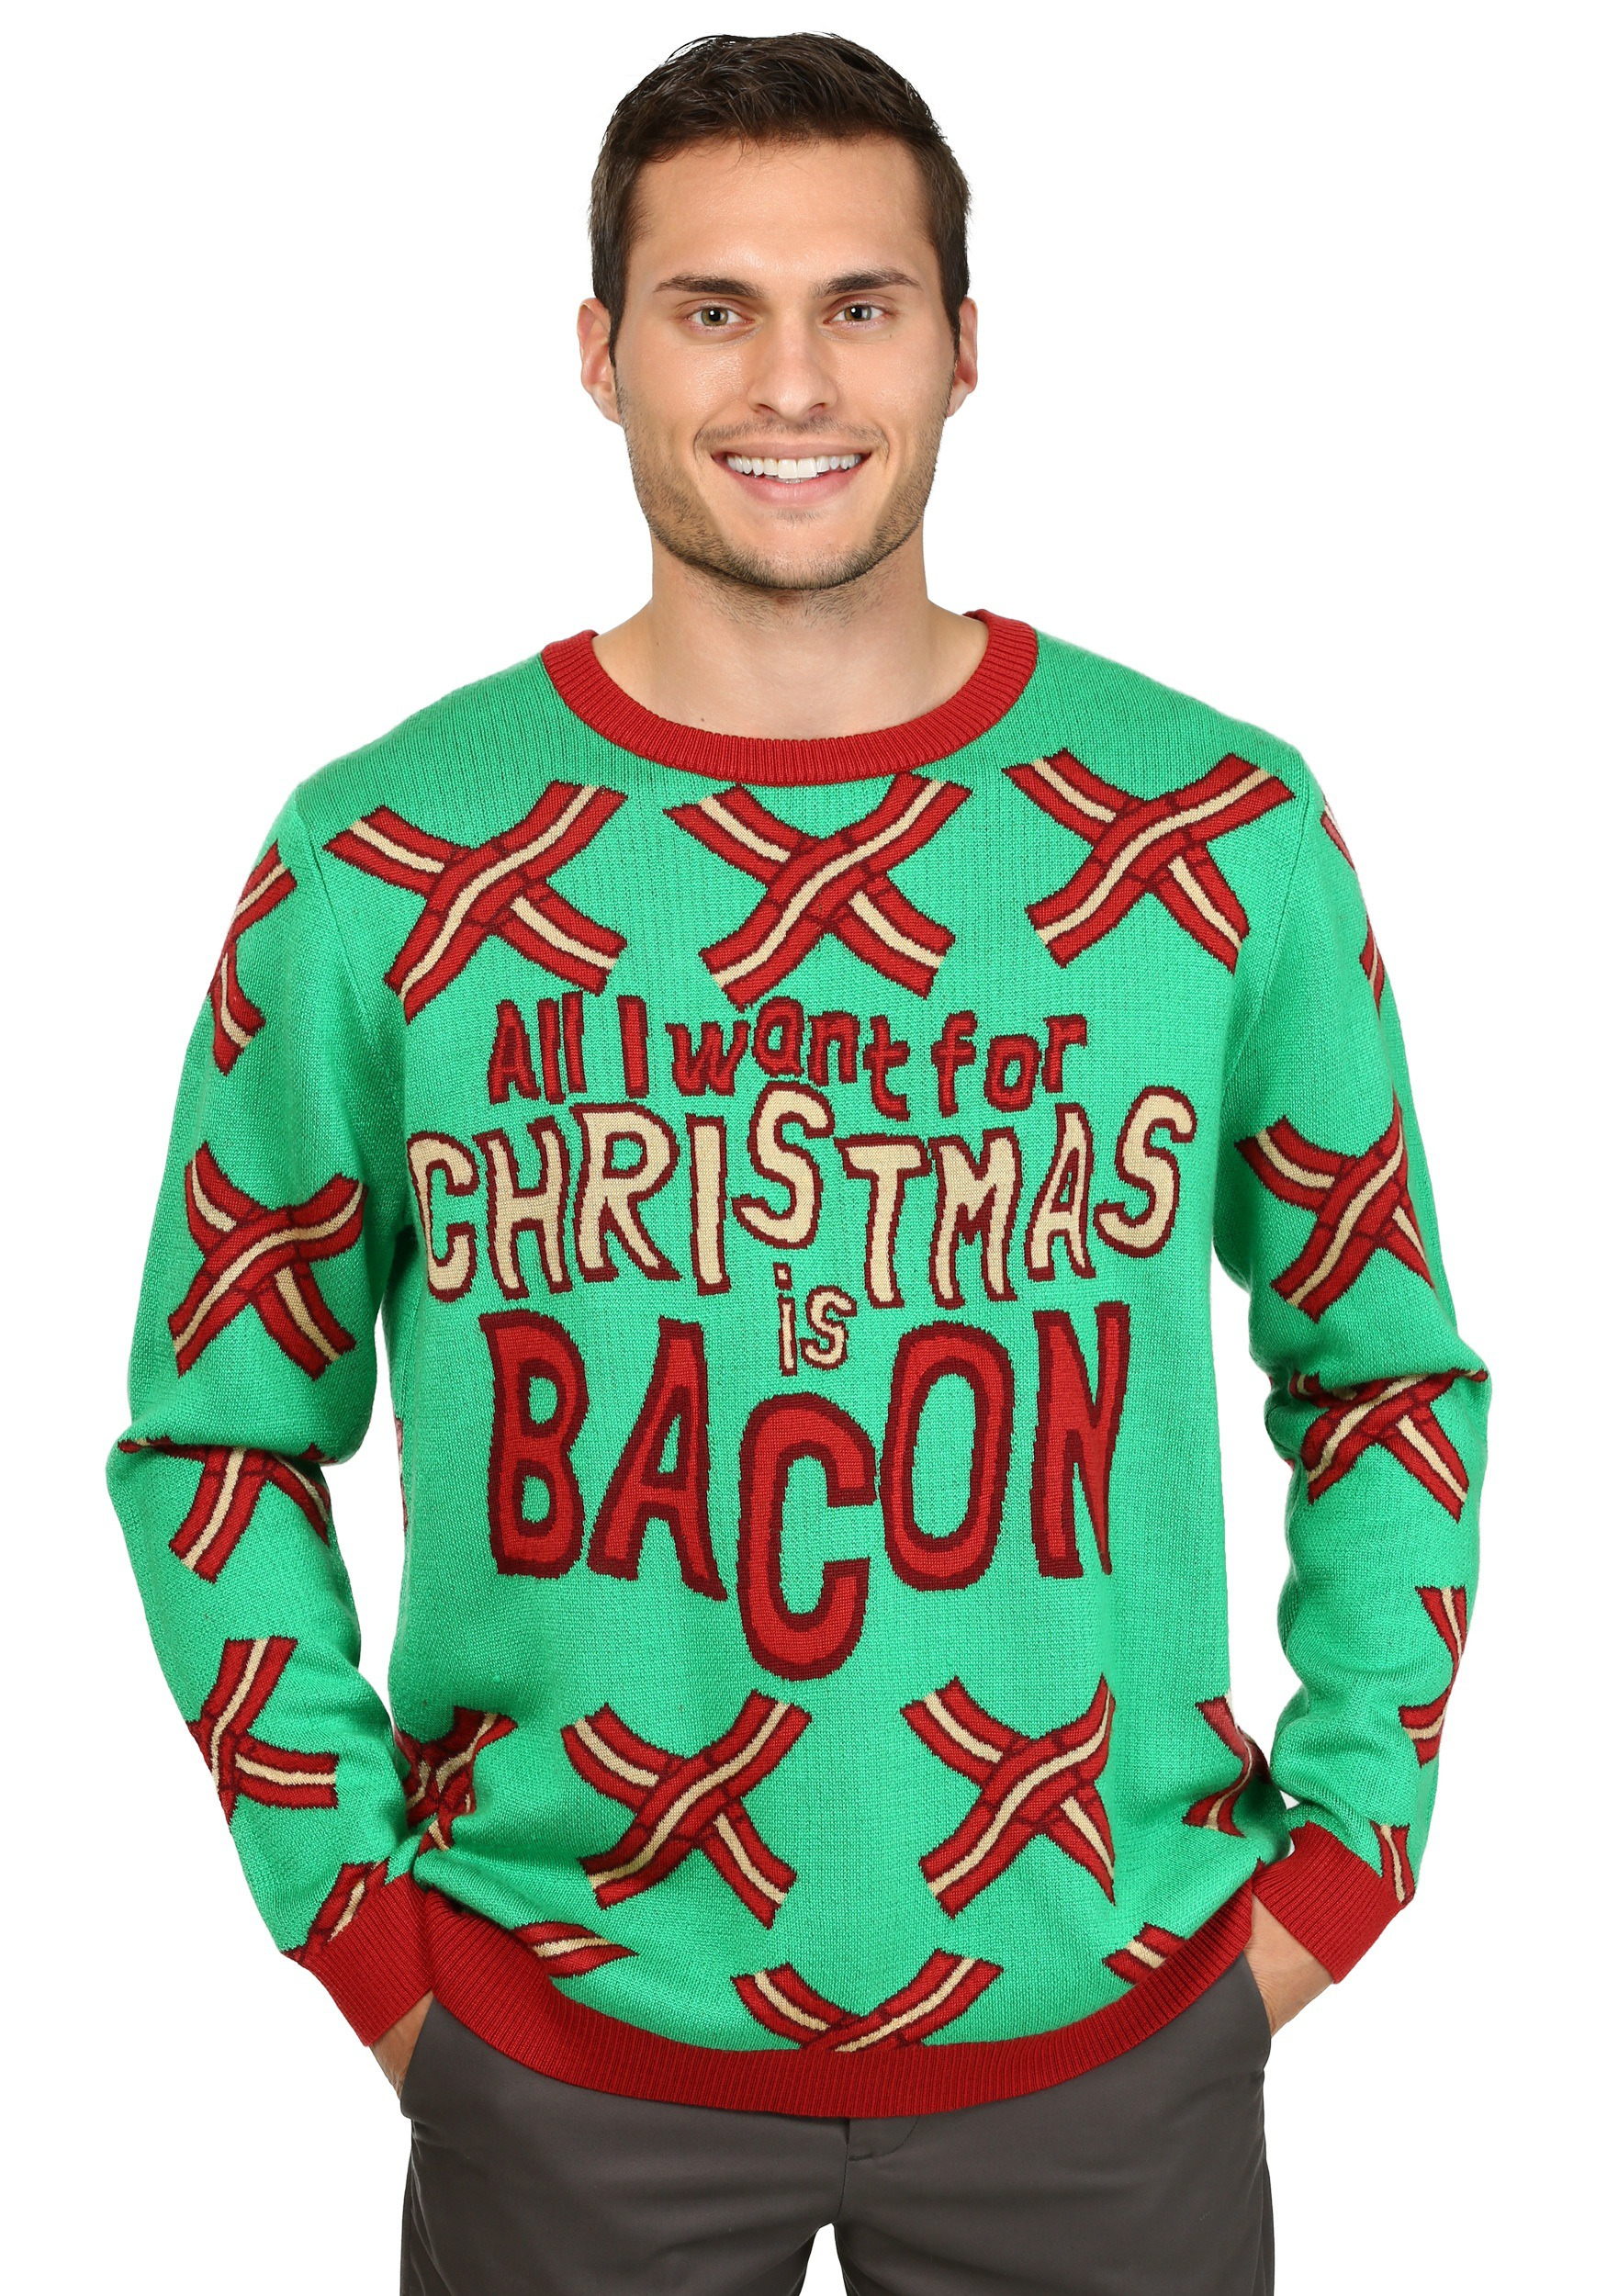 Funny Ugly Christmas Sweater.All I Want For Christmas Is Bacon Ugly Christmas Sweater